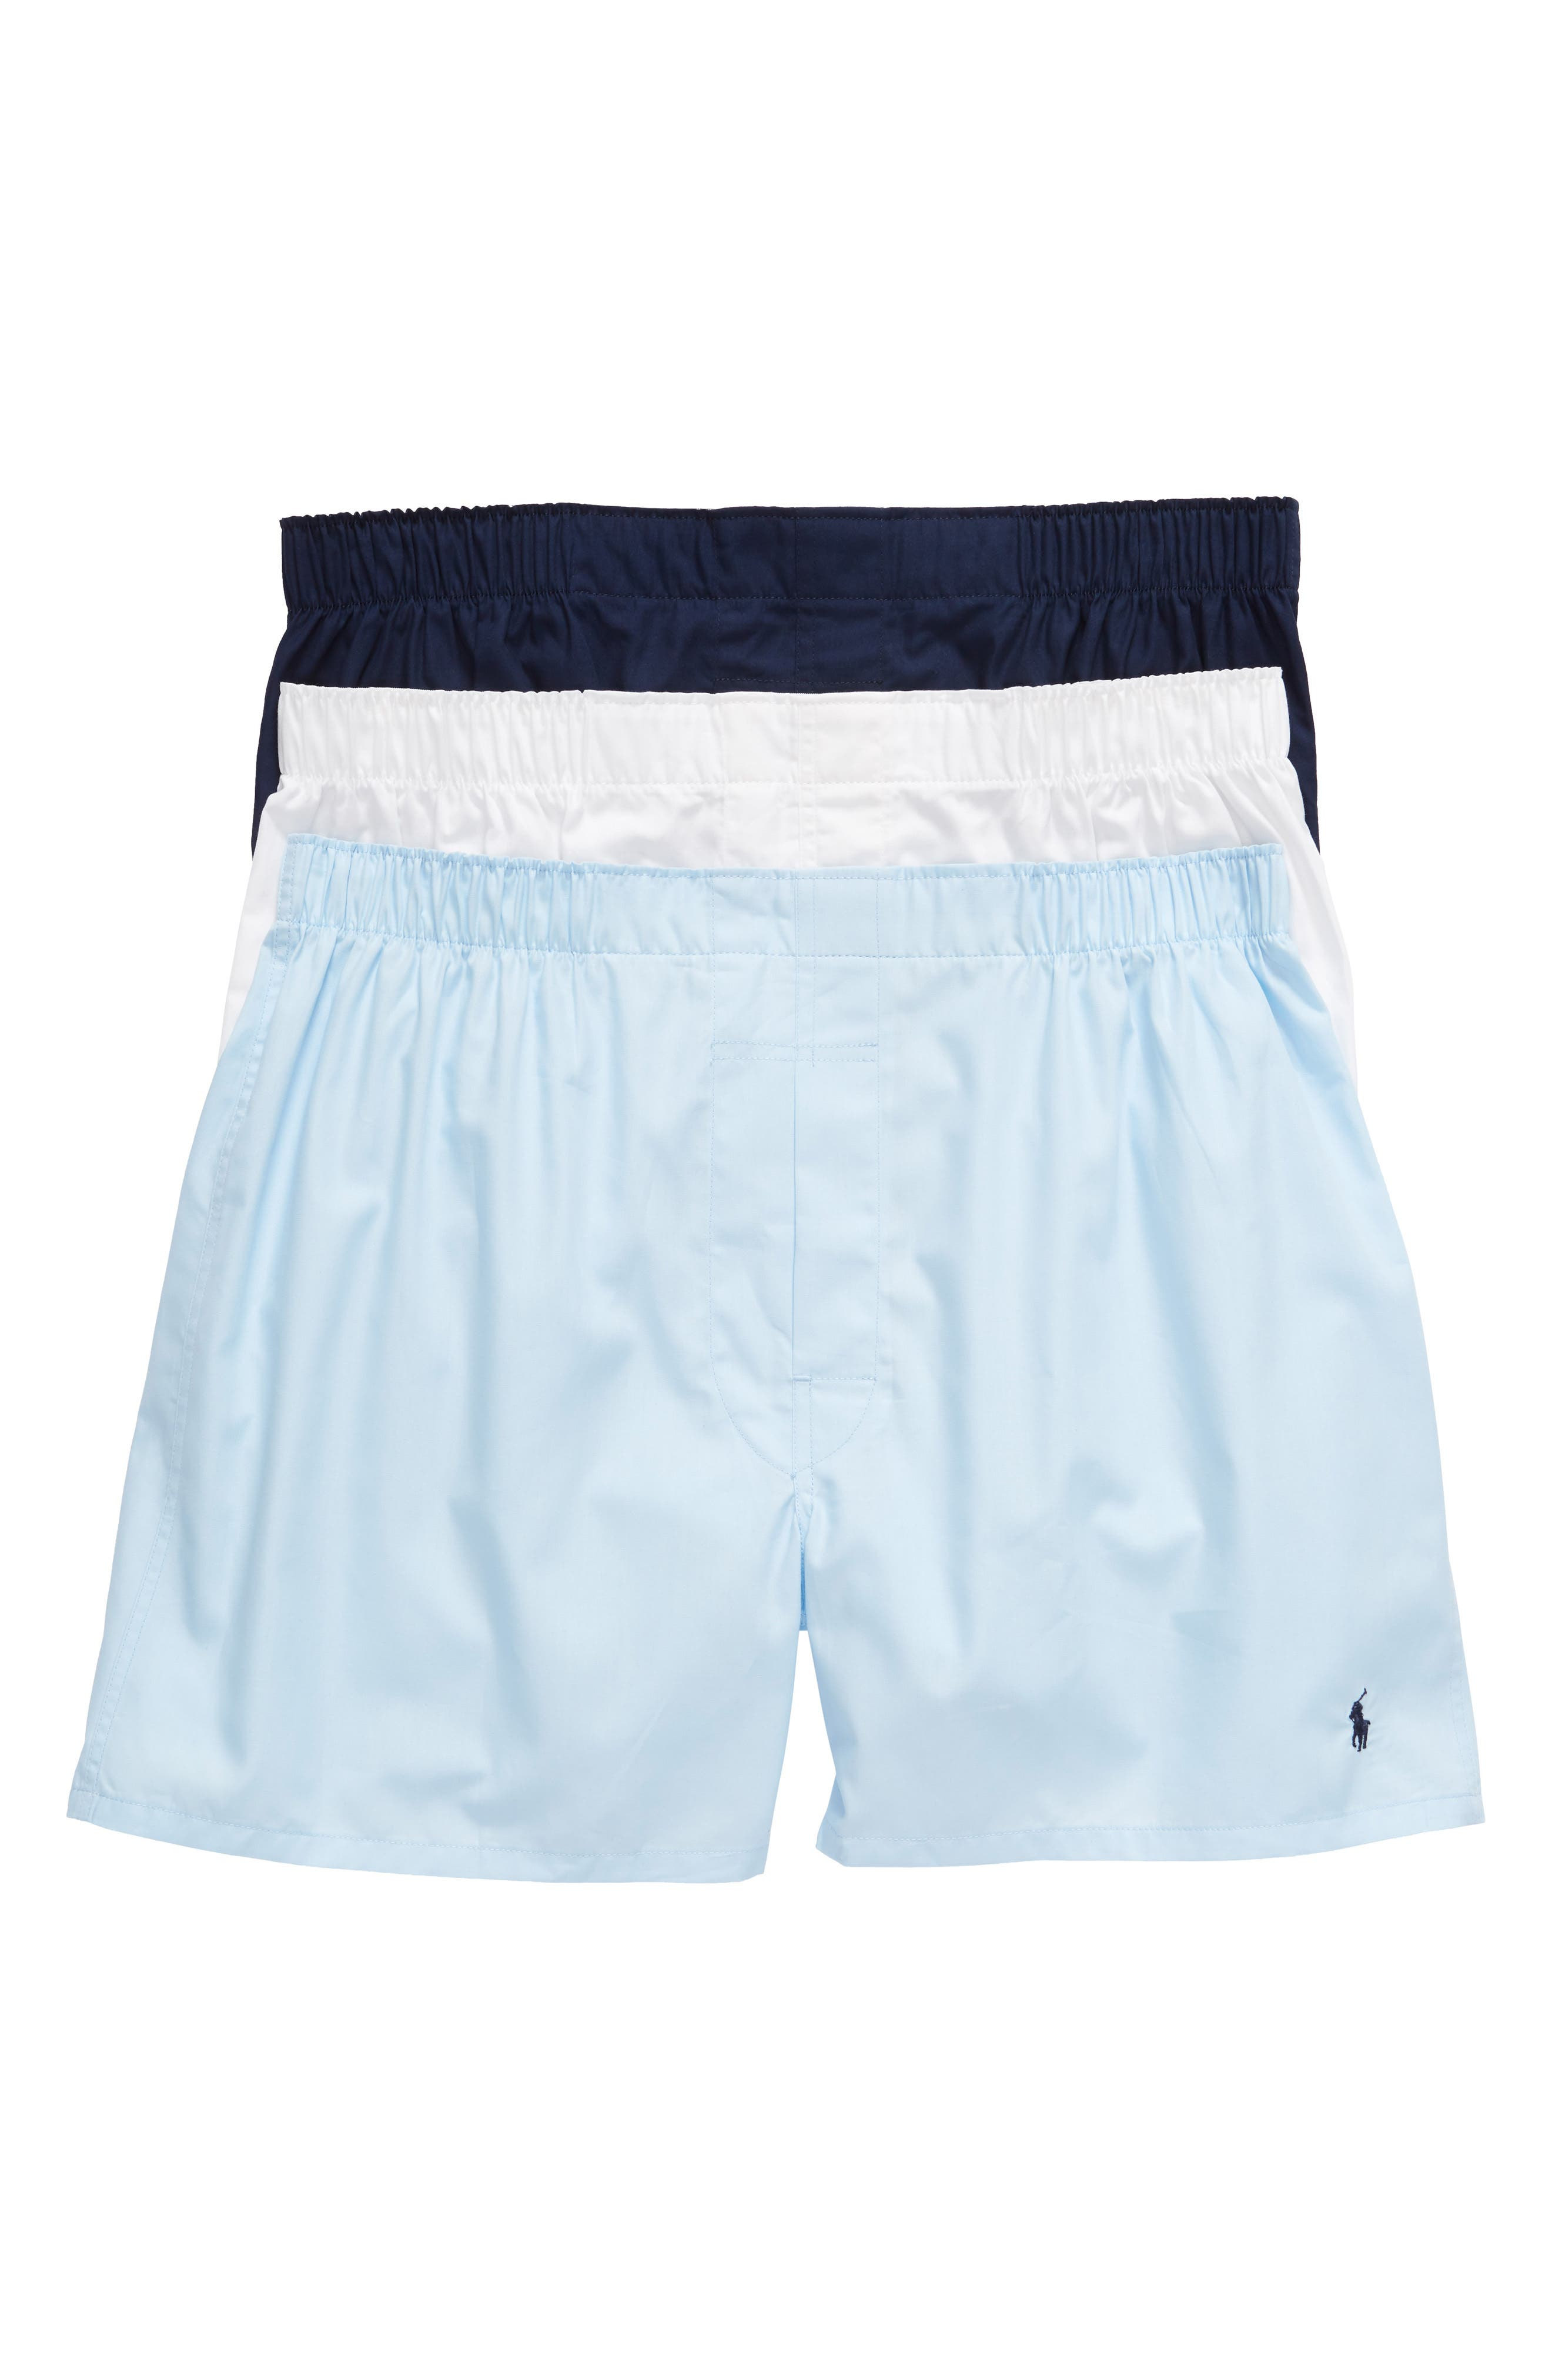 3-Pack Cotton Boxers,                         Main,                         color, WHITE/ LIGHT BLUE/ CRUISE NAVY